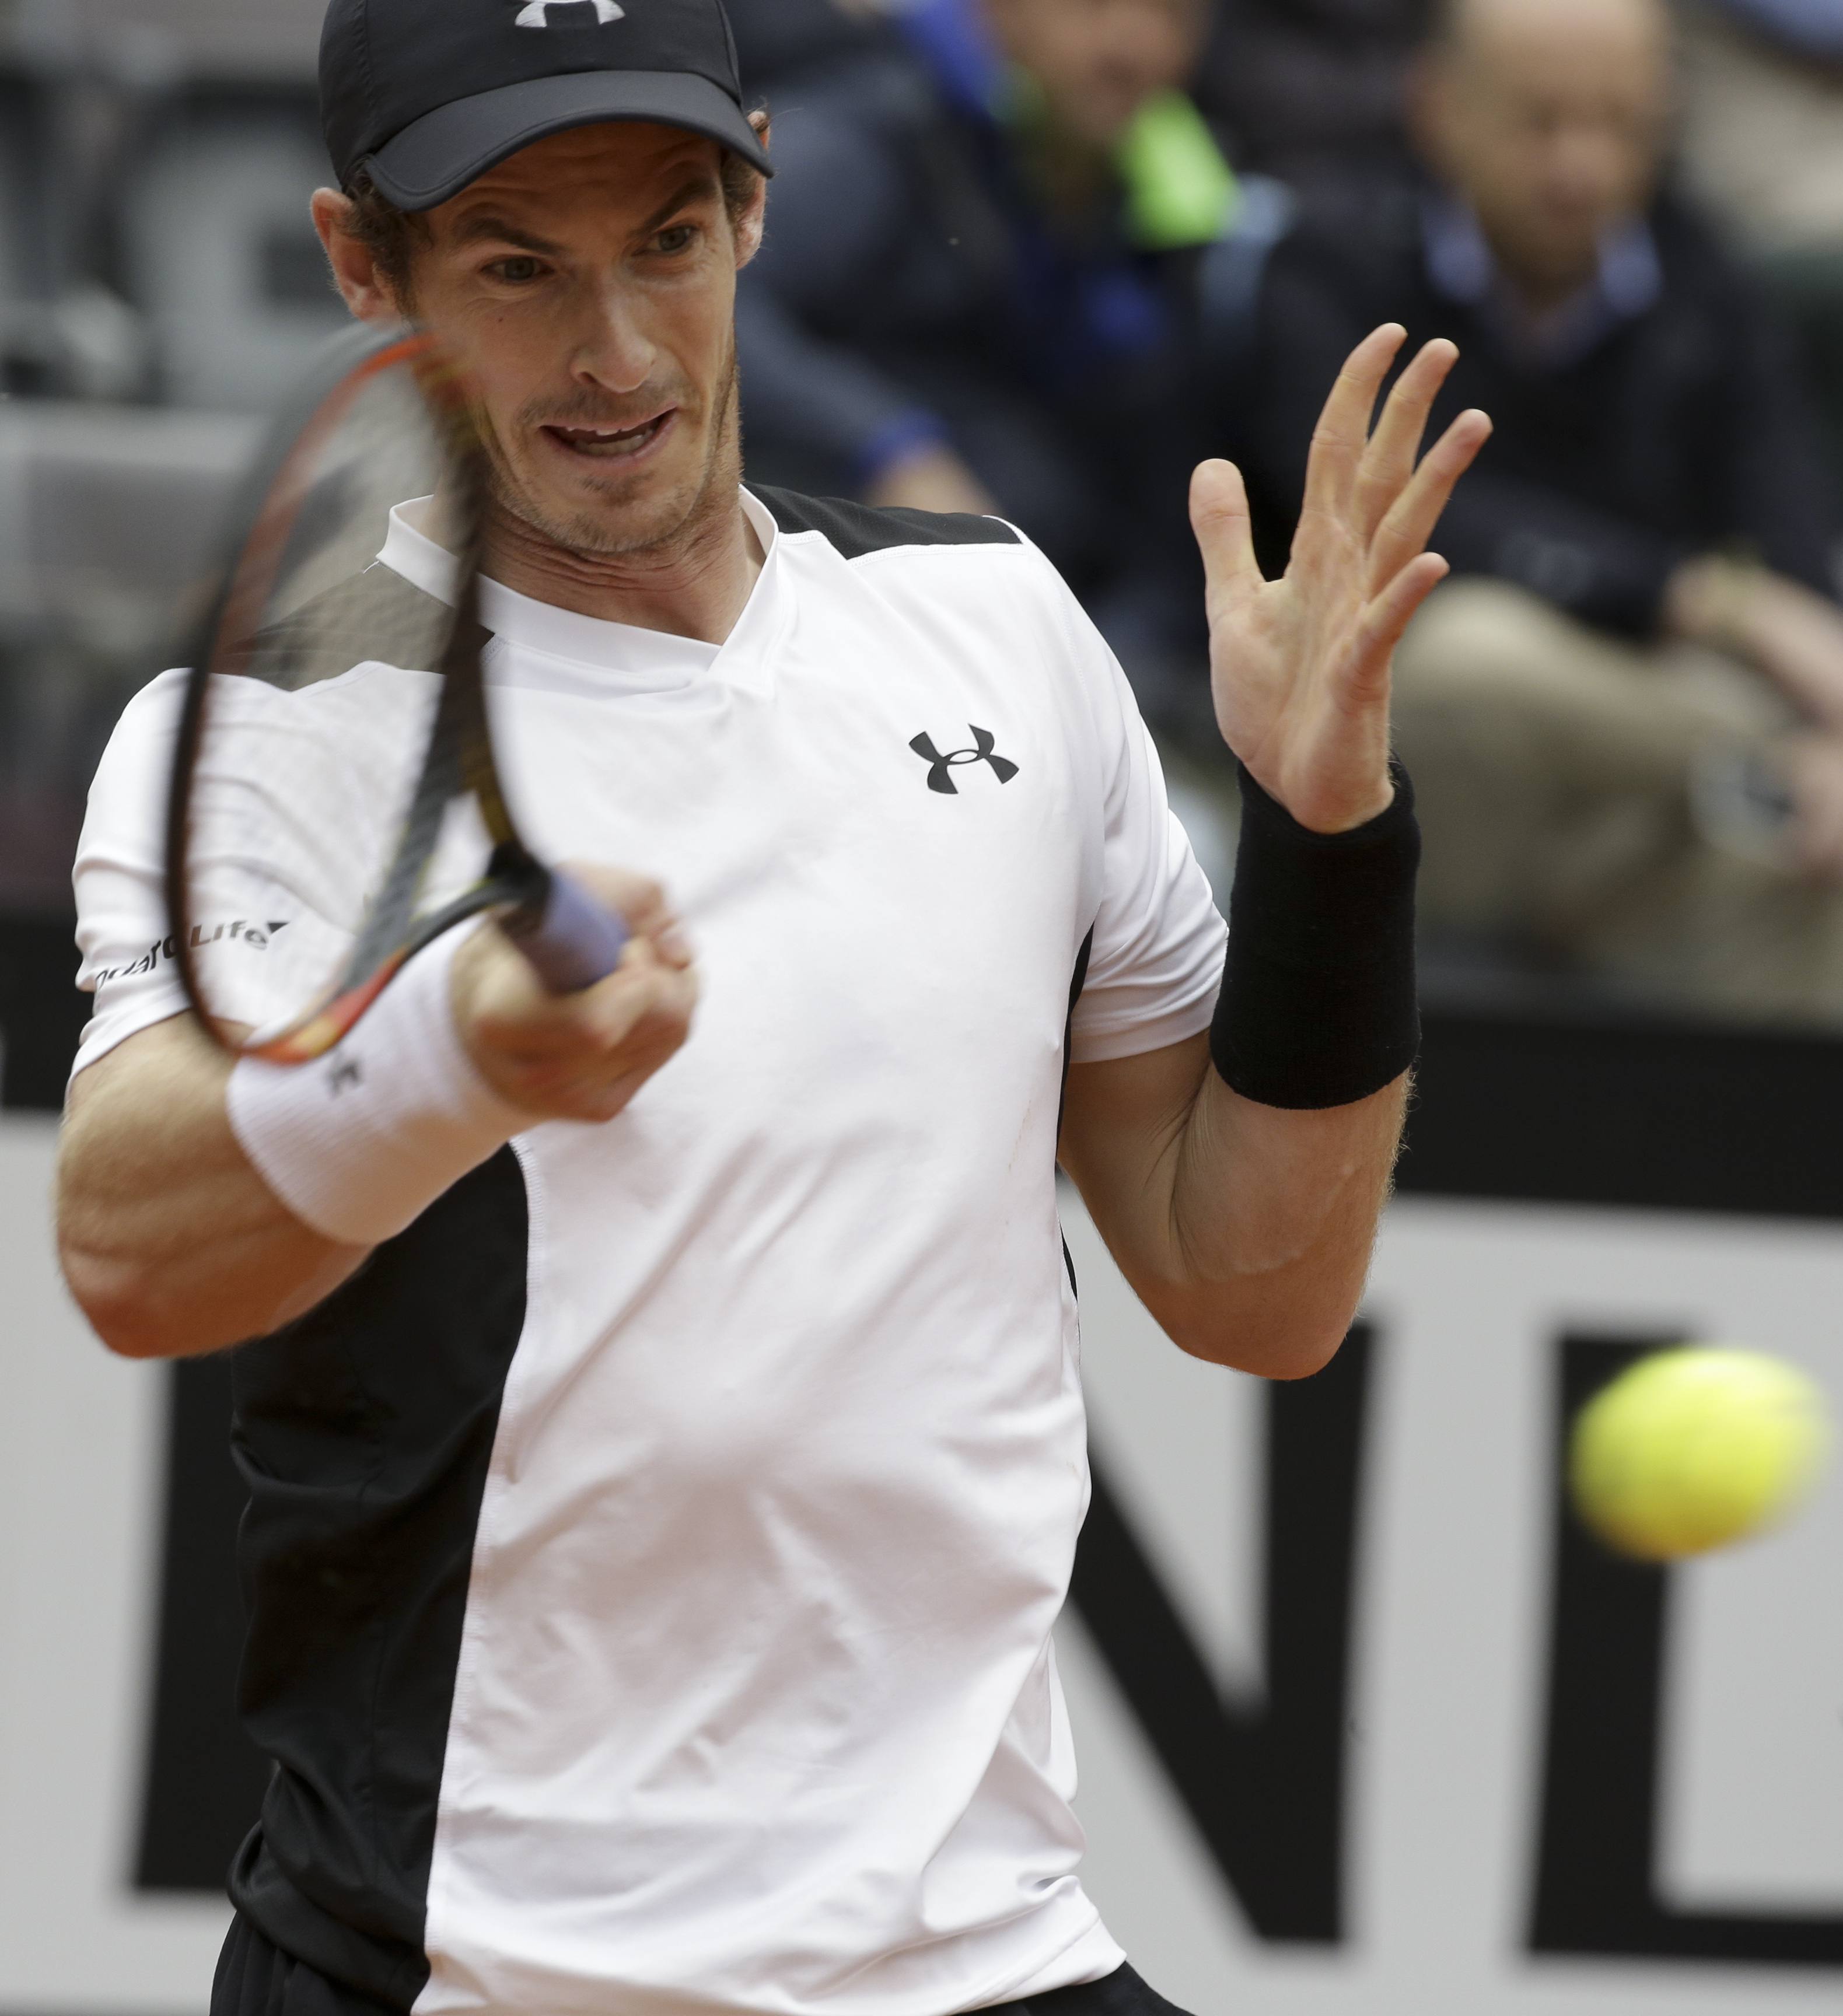 Andy Murray returns the ball to Lucas Pouille during their semifinal match at the Italian Open tennis tournament, in Rome, Saturday, May 14, 2016. (AP Photo/Alessandra Tarantino)